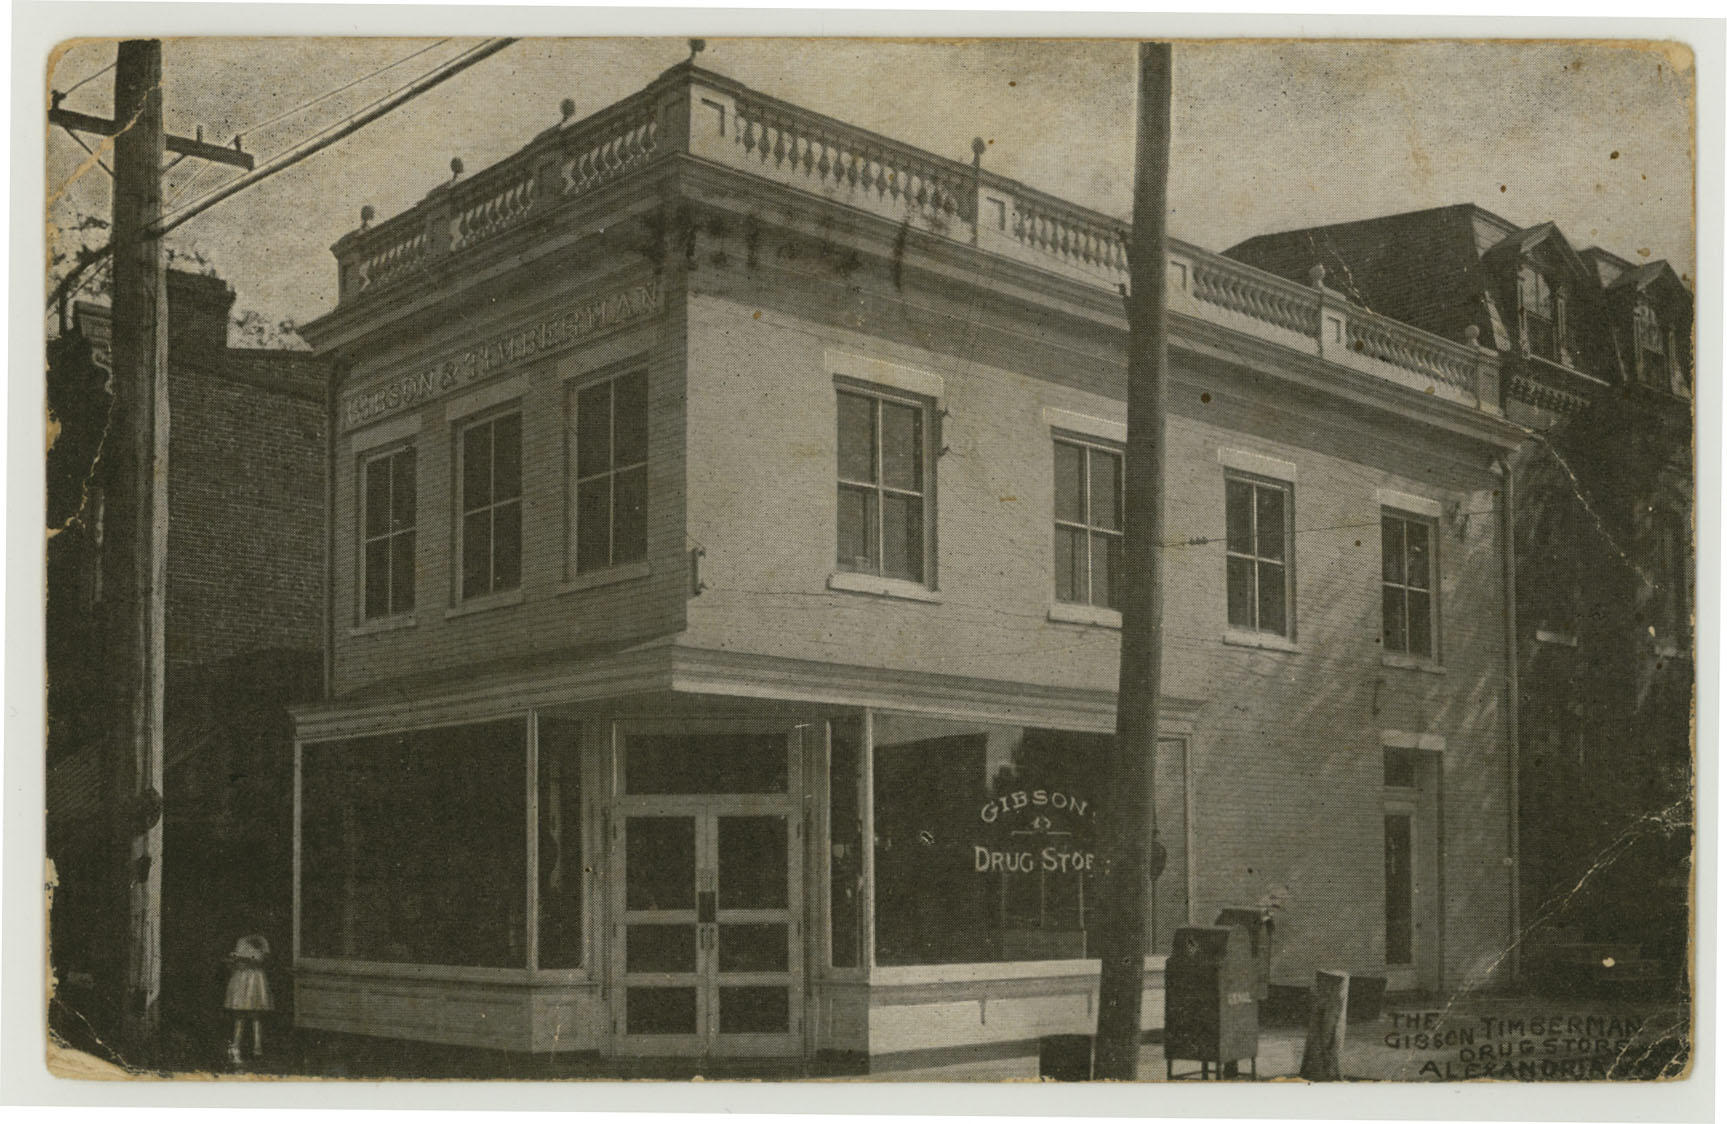 1909 postcard image of Gibson and Timberman's drug store